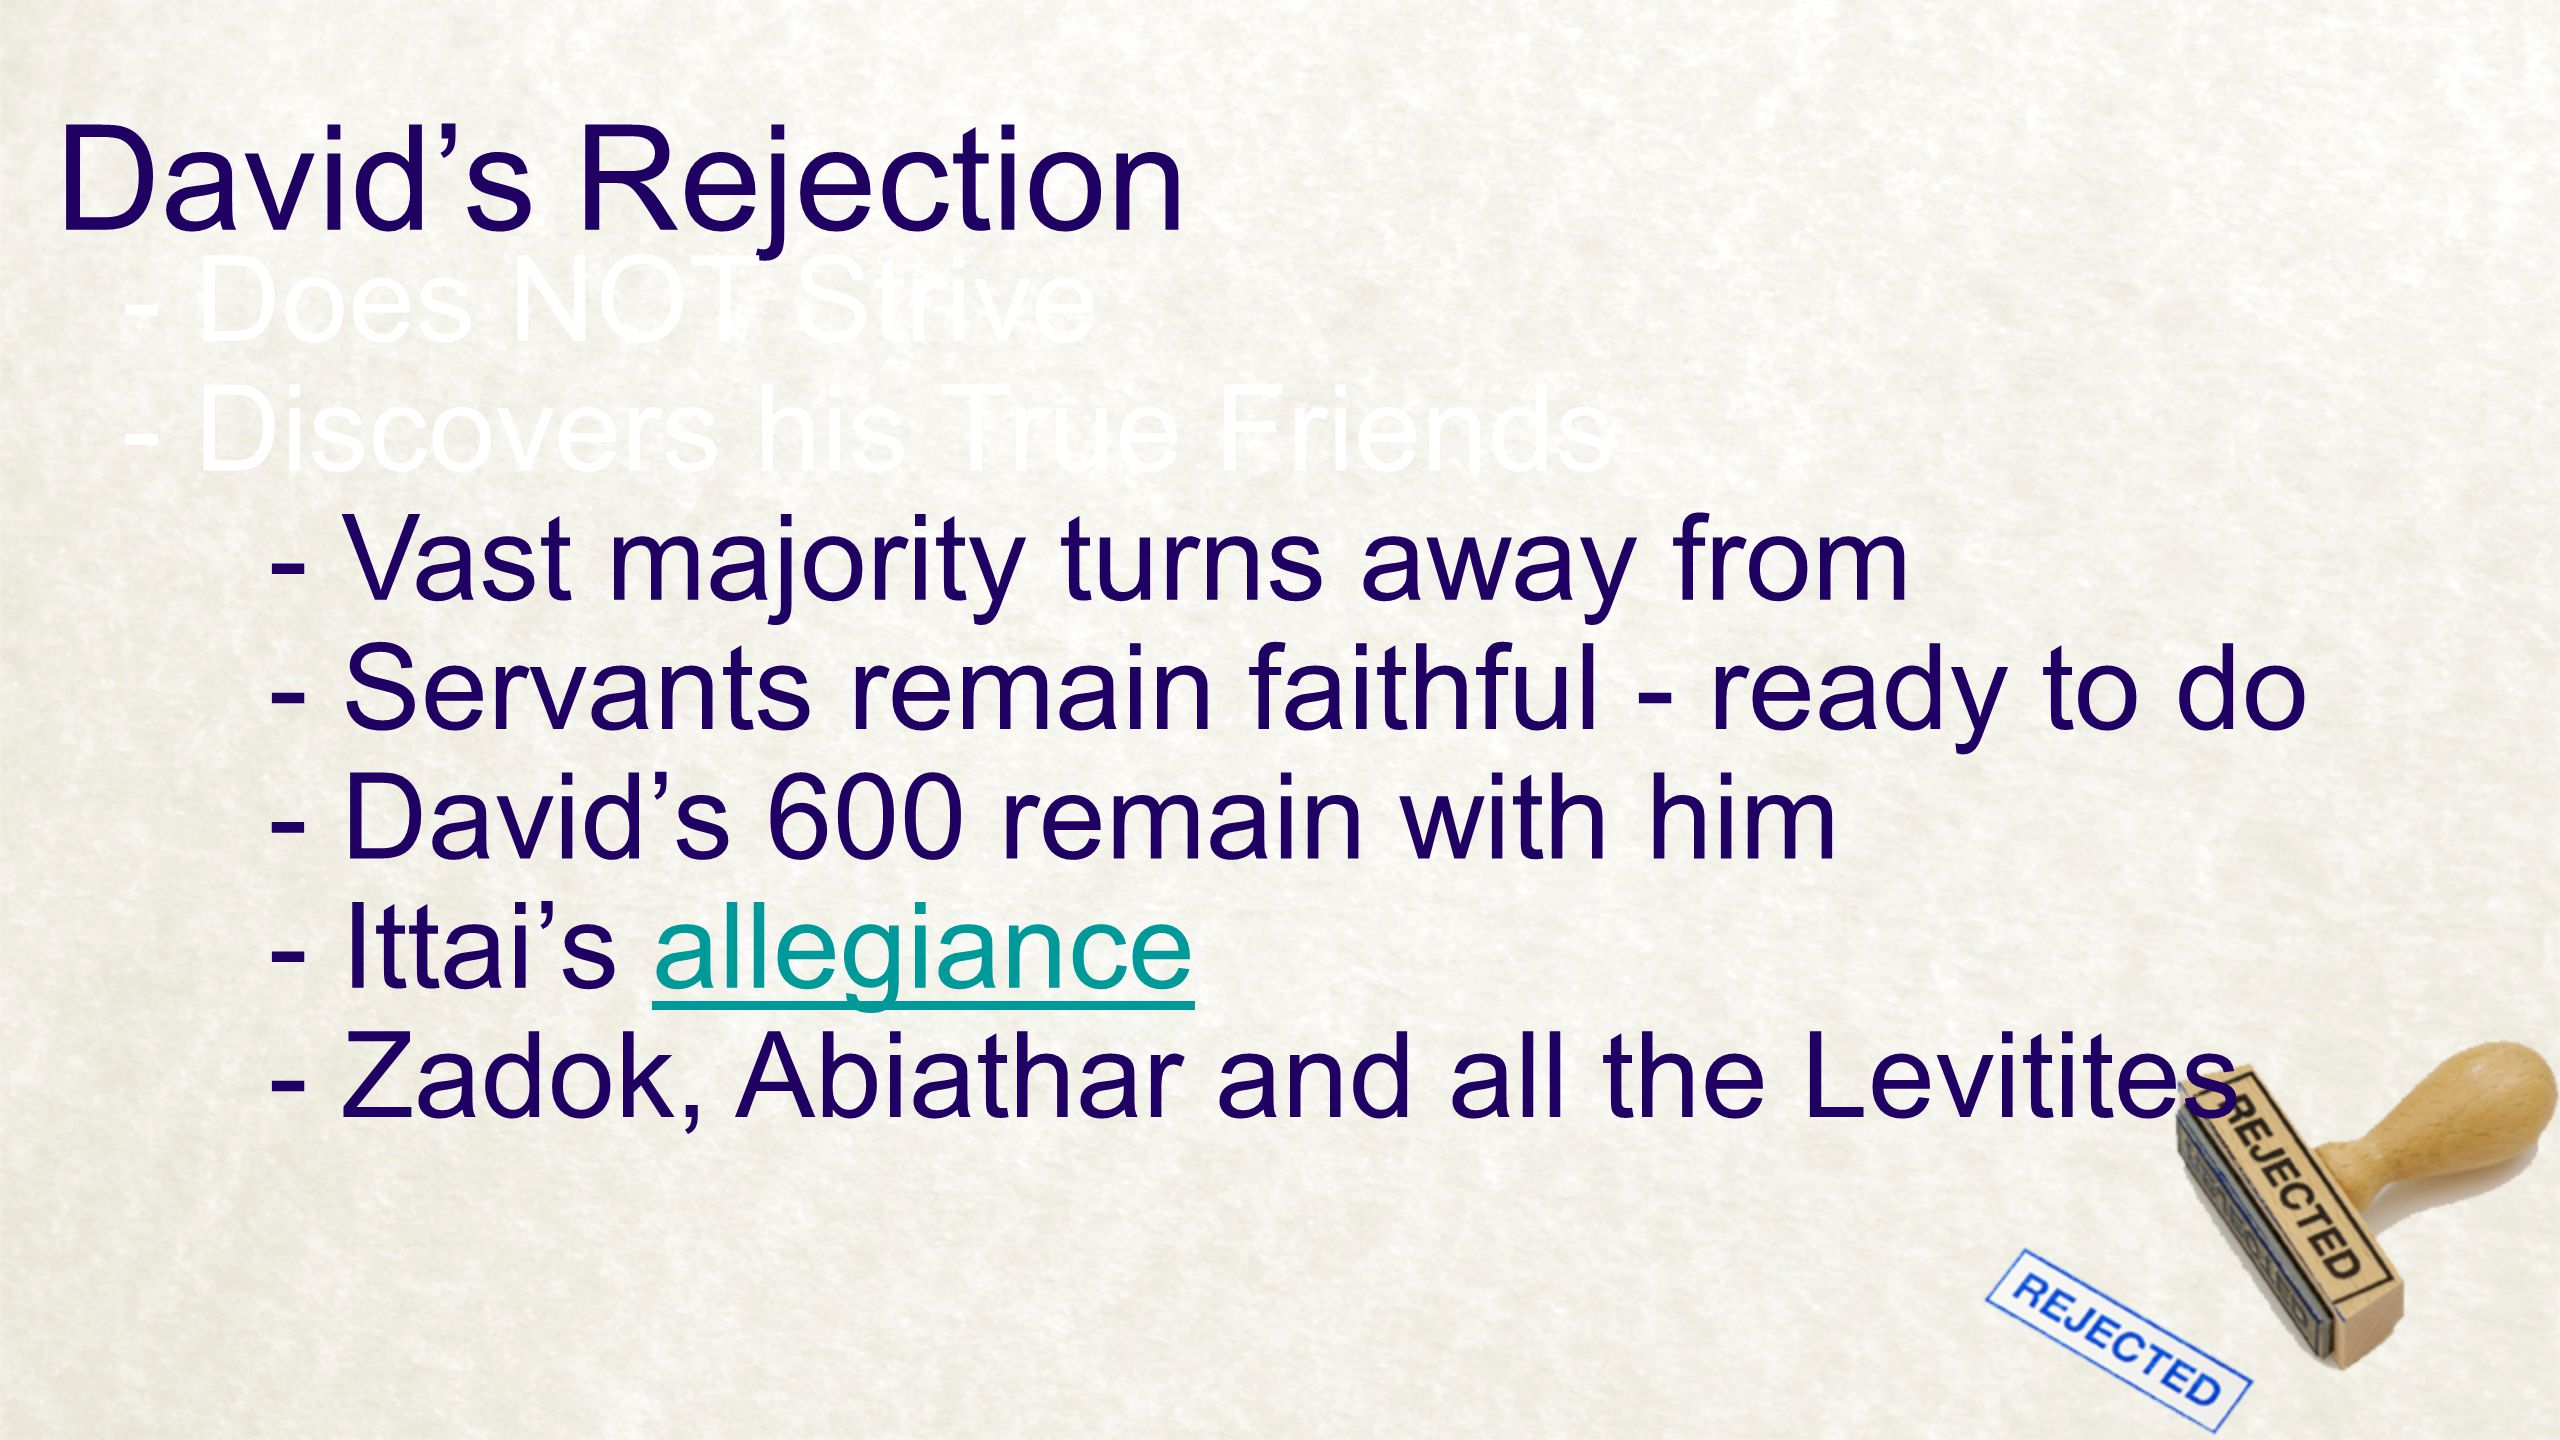 David's Rejection - Does NOT Strive - Discovers his True Friends - Vast majority turns away from - Servants remain faithful - ready to do - David's 60